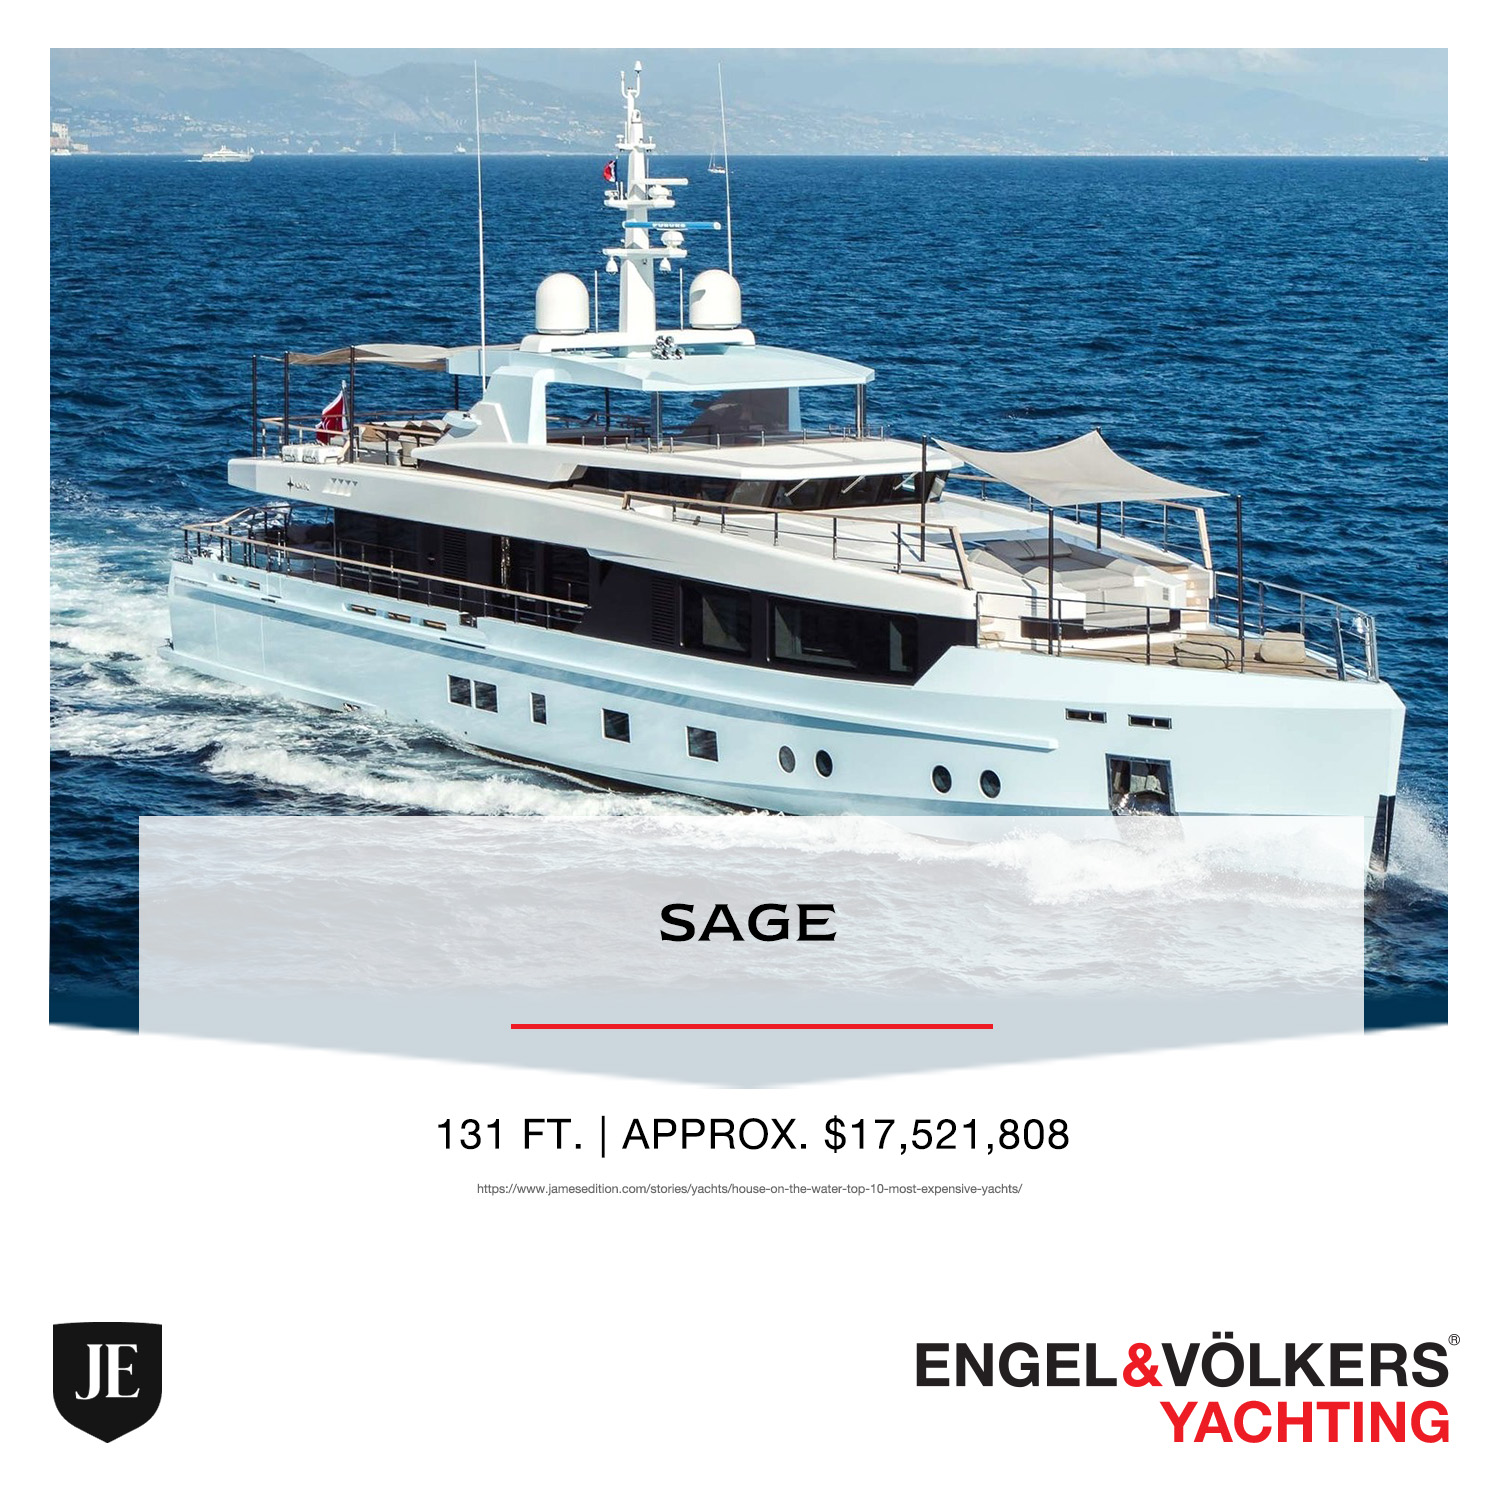 Sage YACHT ENGEL & VOLKERS YACHTING